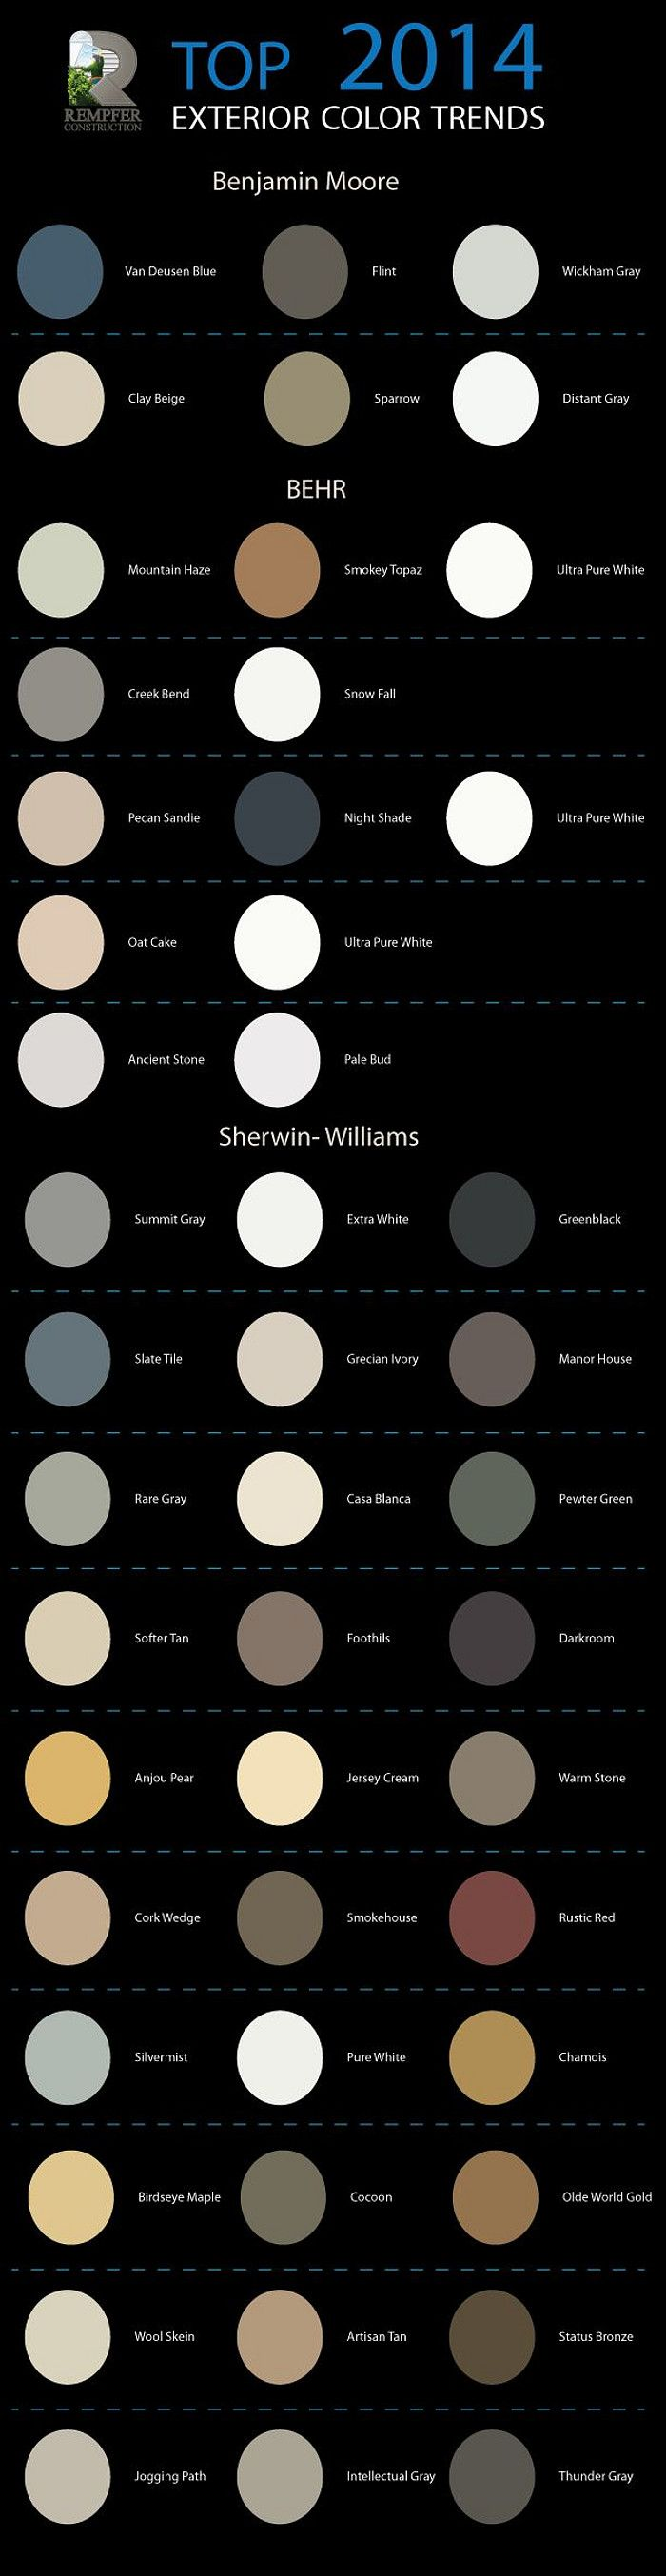 Ome Exterior Paint Color  Home Exterior Paint Color Trend  Popular home  exterior paint color13 best Color Trends 2014 images on Pinterest   Benjamin moore  . Front Door Color Trends 2014. Home Design Ideas